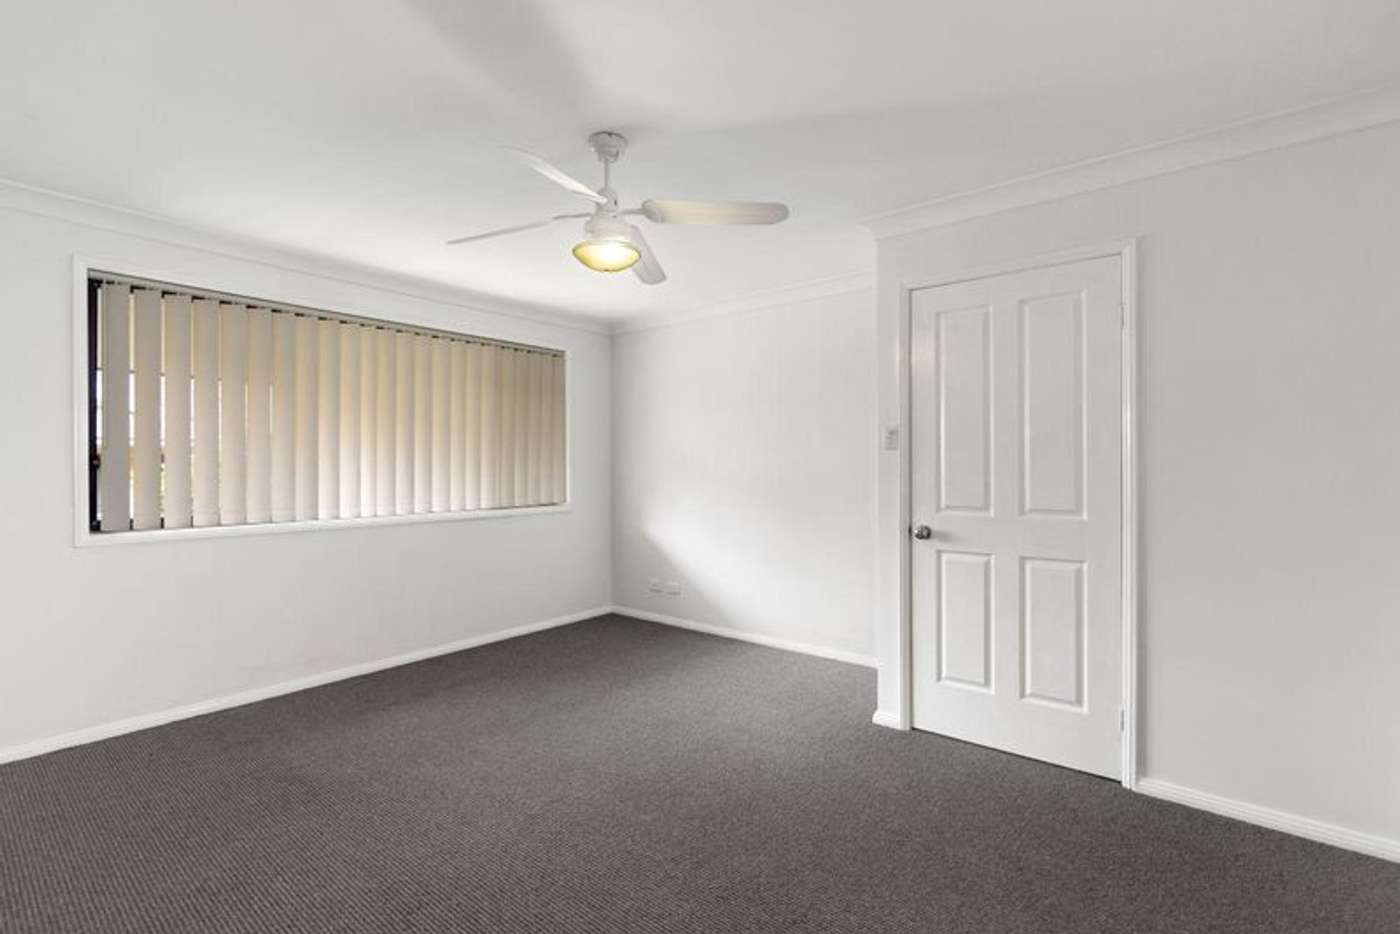 Sixth view of Homely townhouse listing, 4/72 Dwyer Street, North Gosford NSW 2250